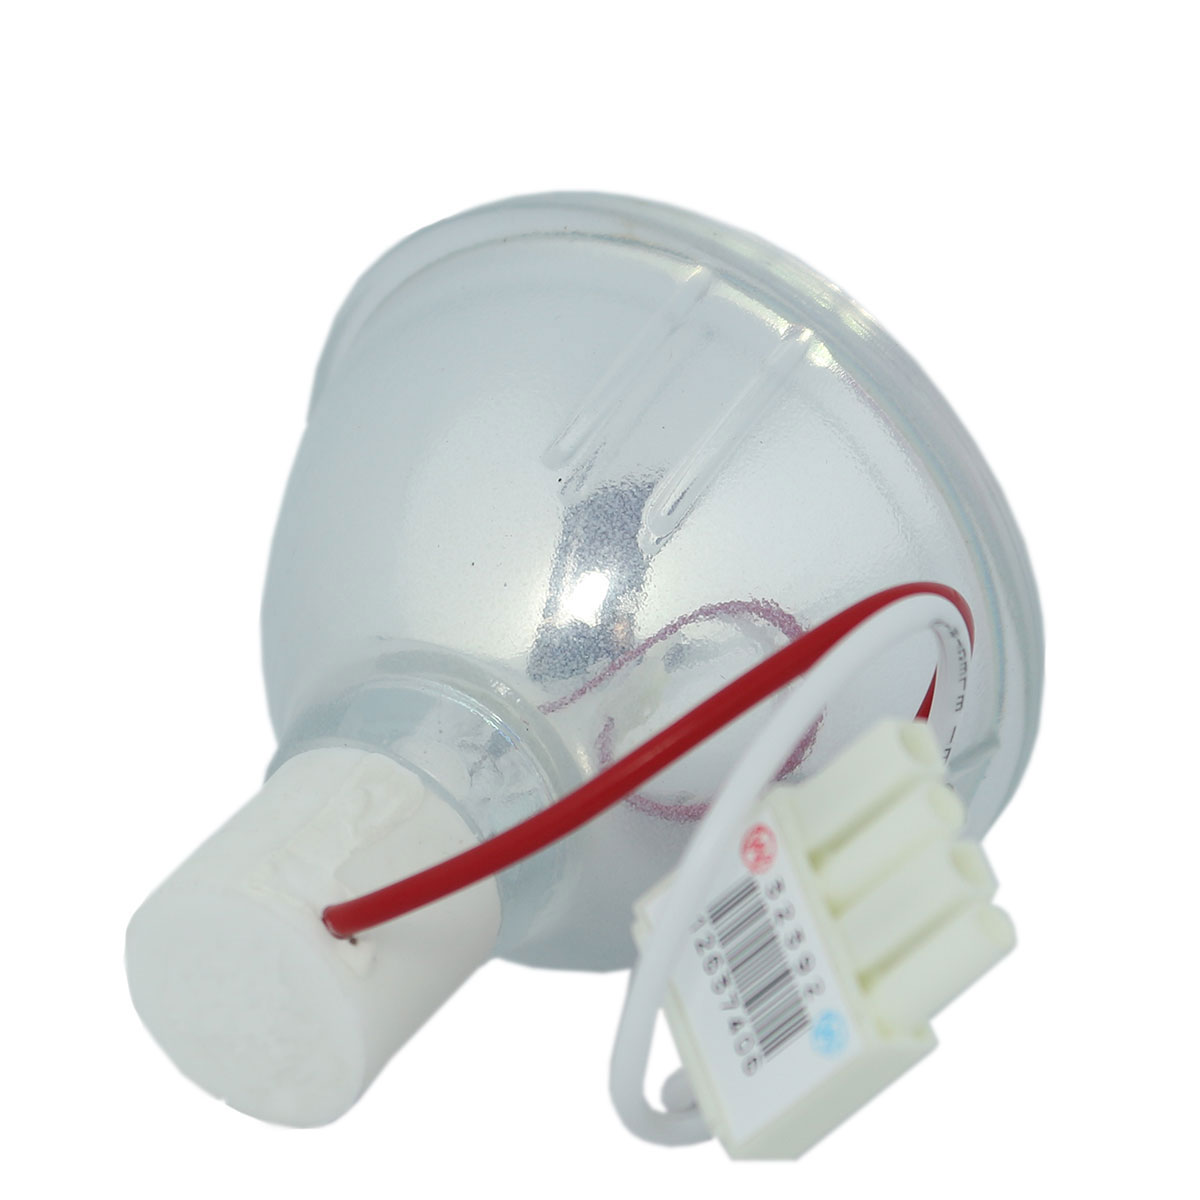 Lutema Economy Bulb for InFocus Work Big IN26 Projector (Lamp Only) - image 1 de 5